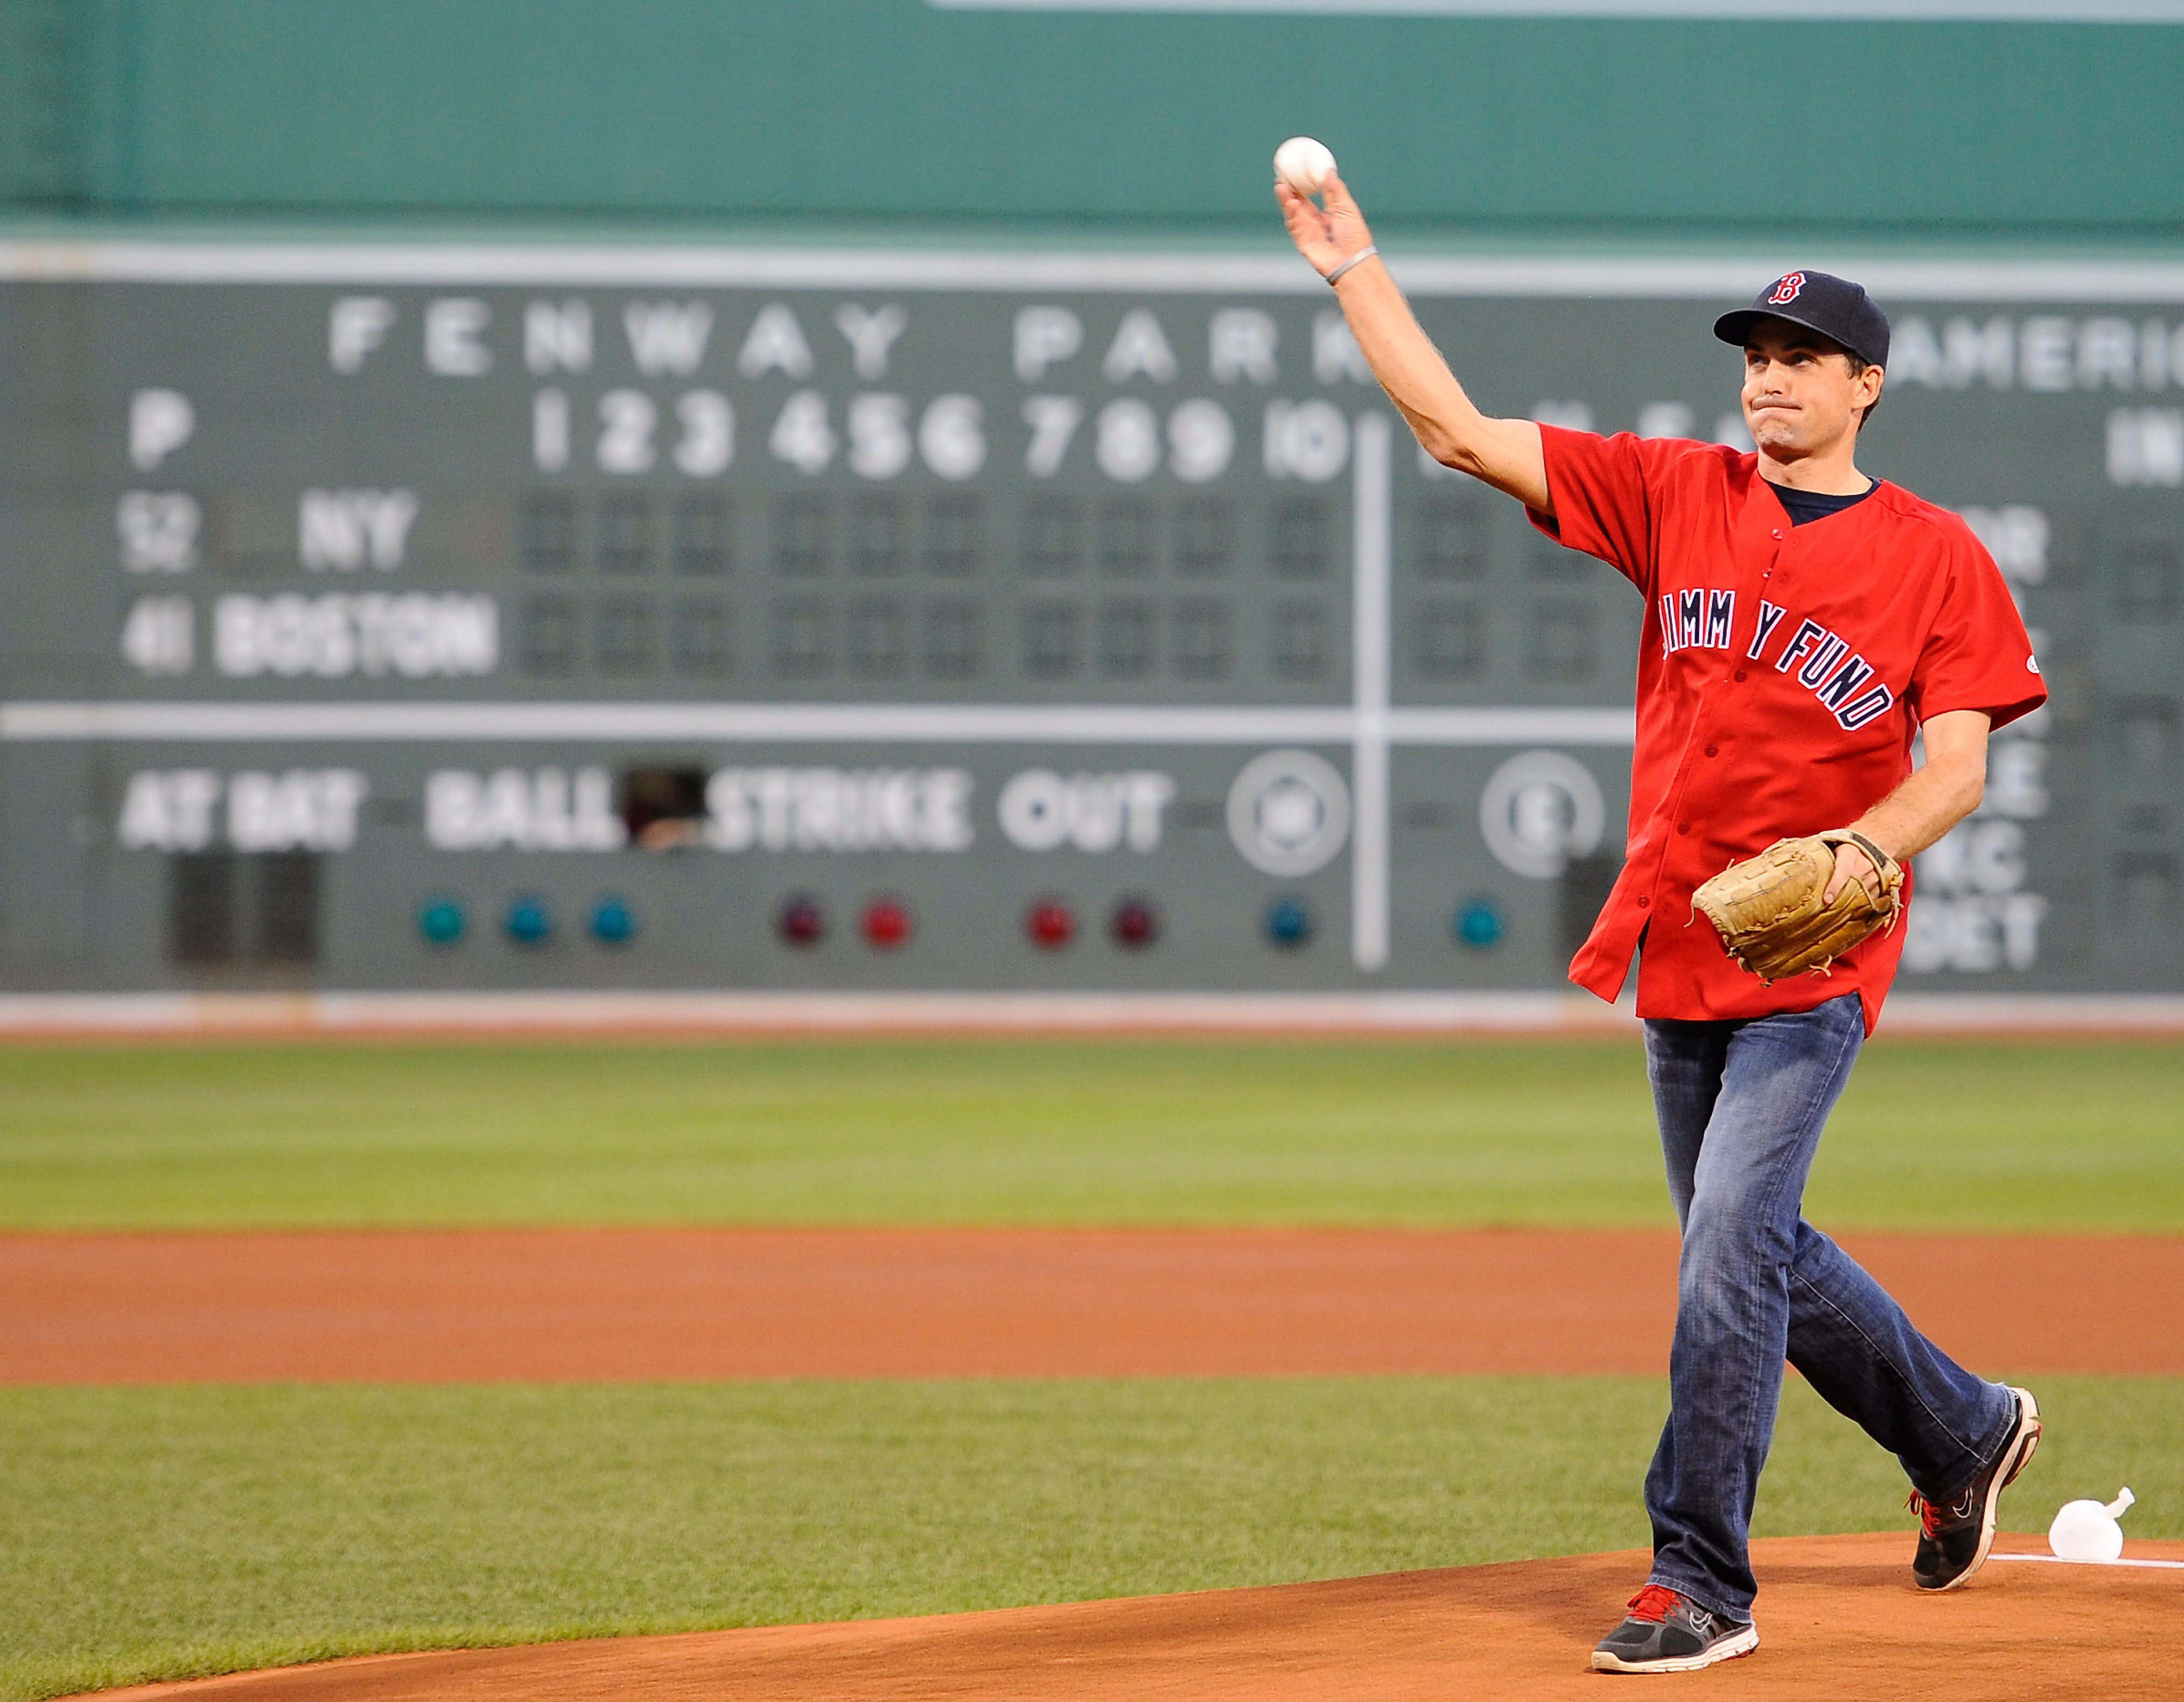 Keegan Bradley: Baseball Boston-area native Keegan Bradley throws out the first pitch for his beloved Red Sox in August 2011.